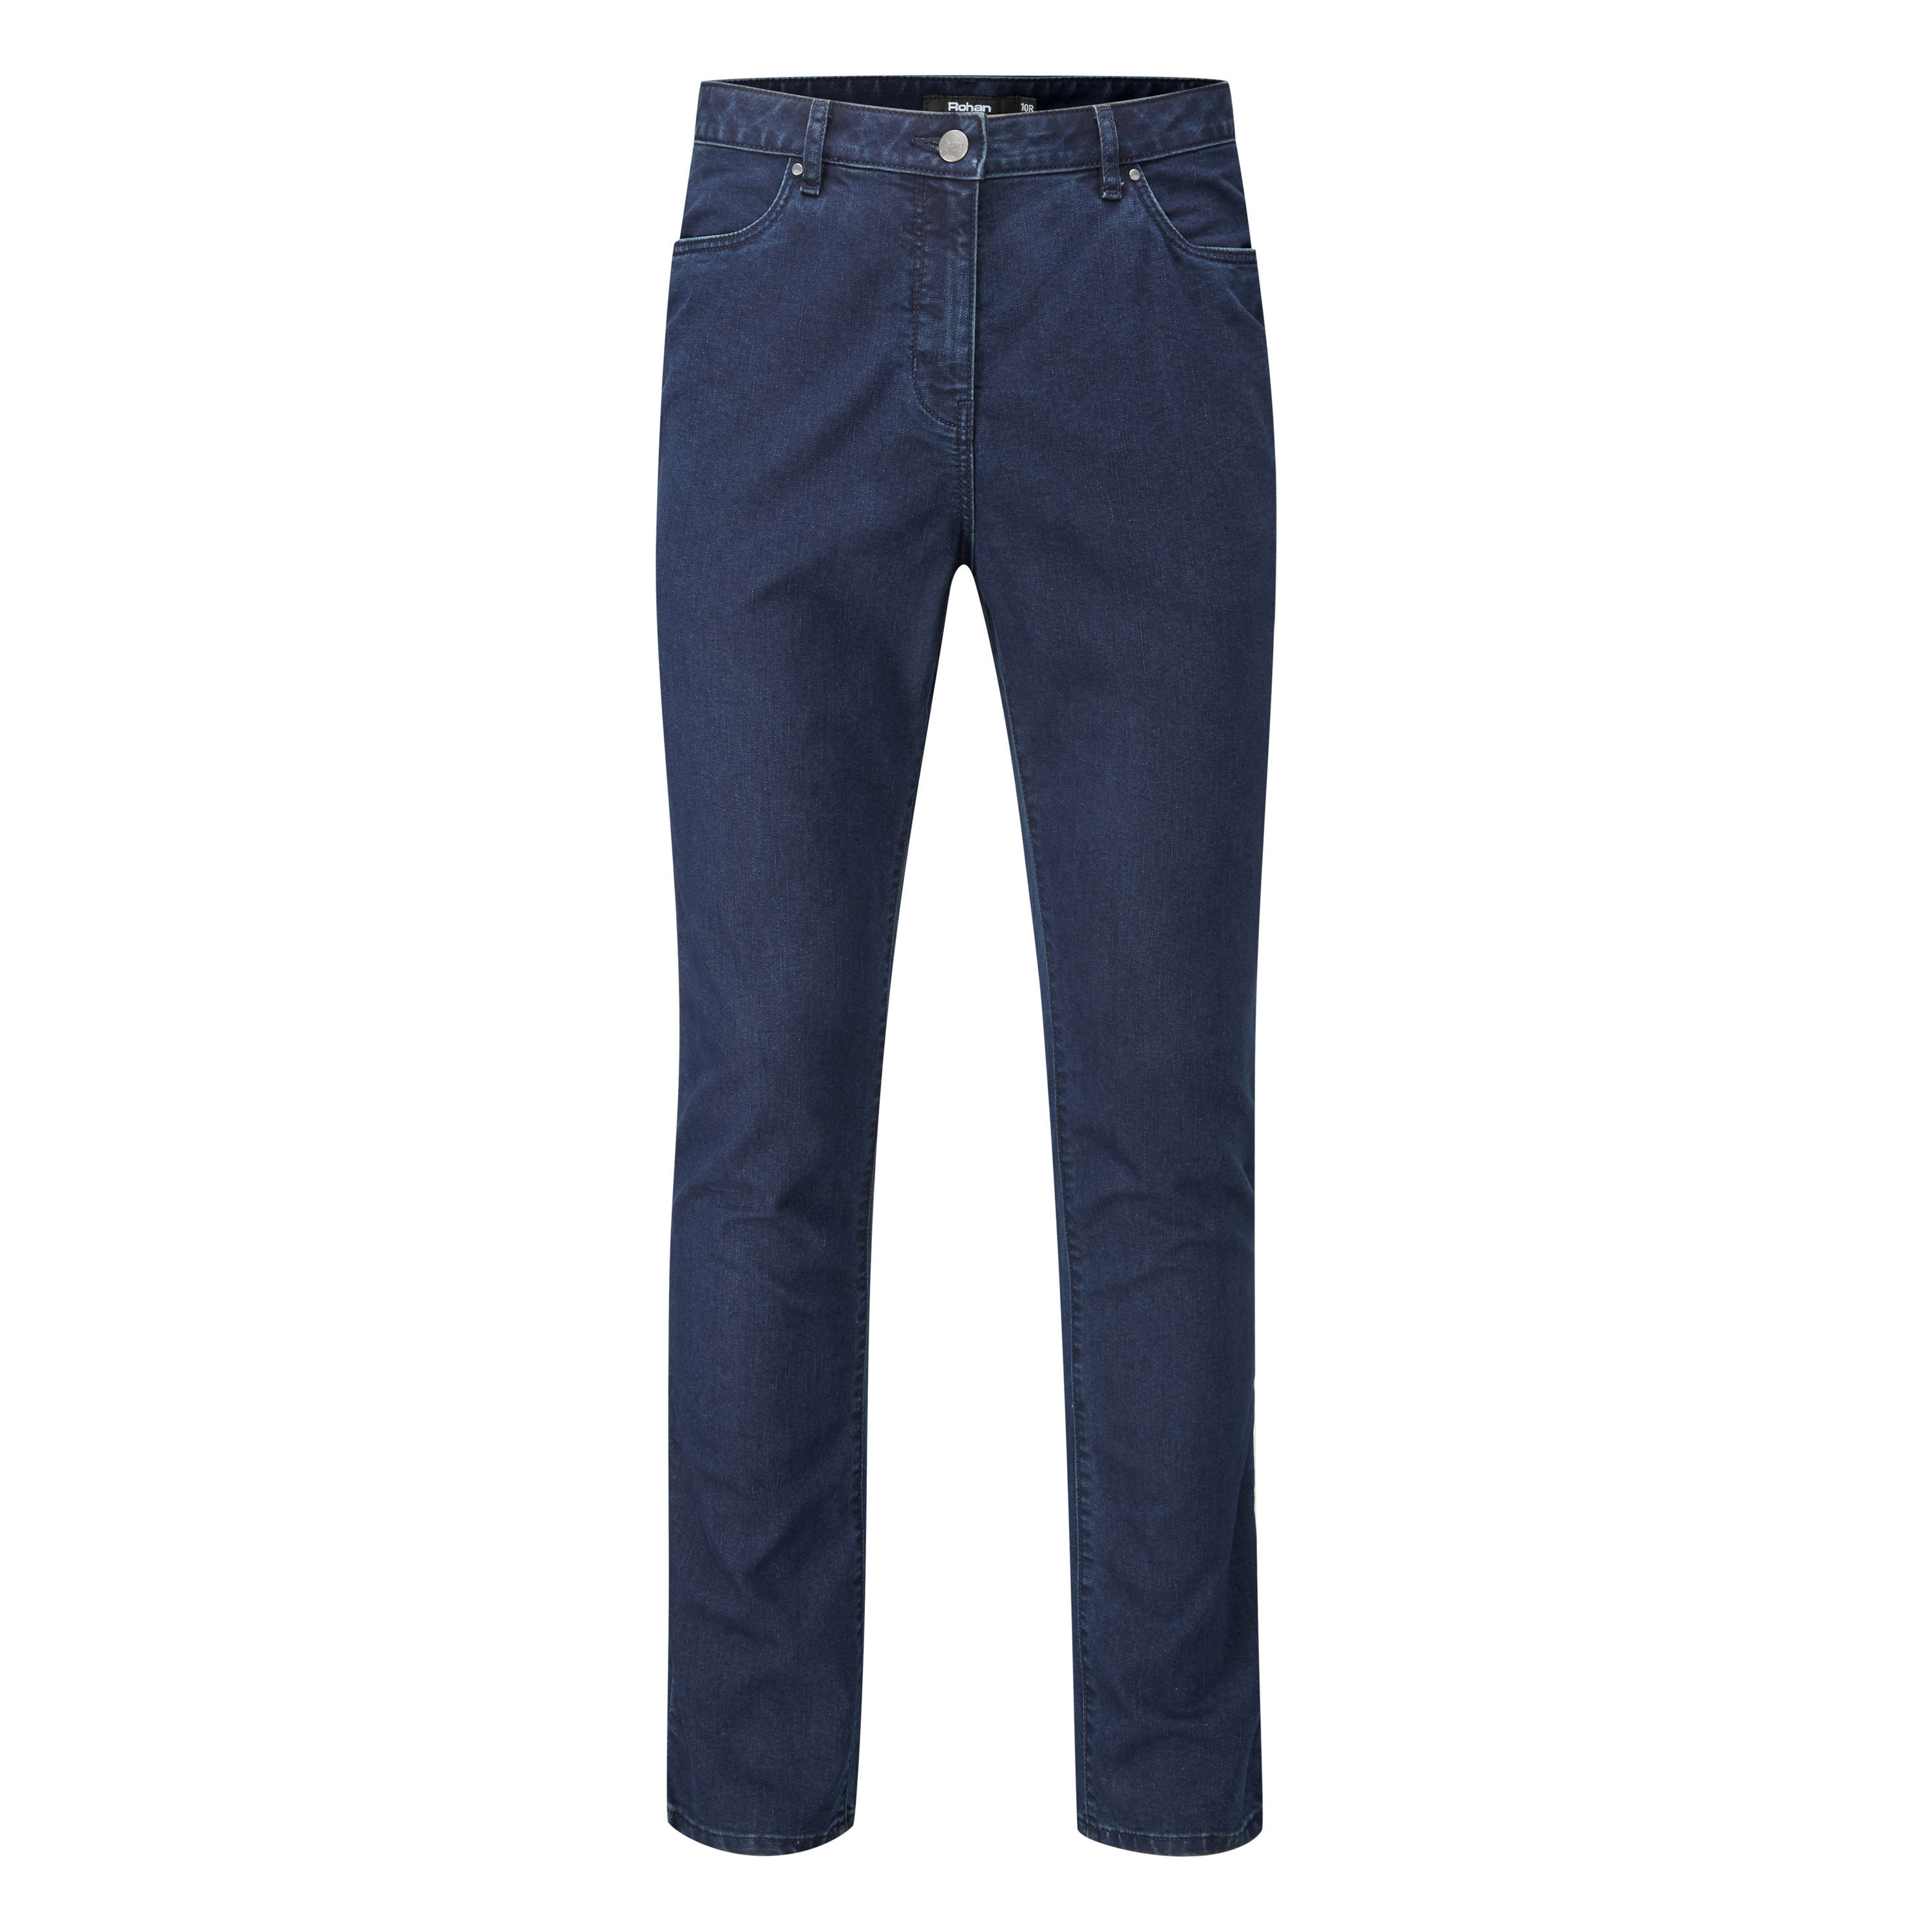 Women S Jeans Straight Leg Perfectly Normal Jeans Just Much Cleverer Shop women's straight leg jeans and see our entire collection of women's straight jeans and more. women s jeans straight leg